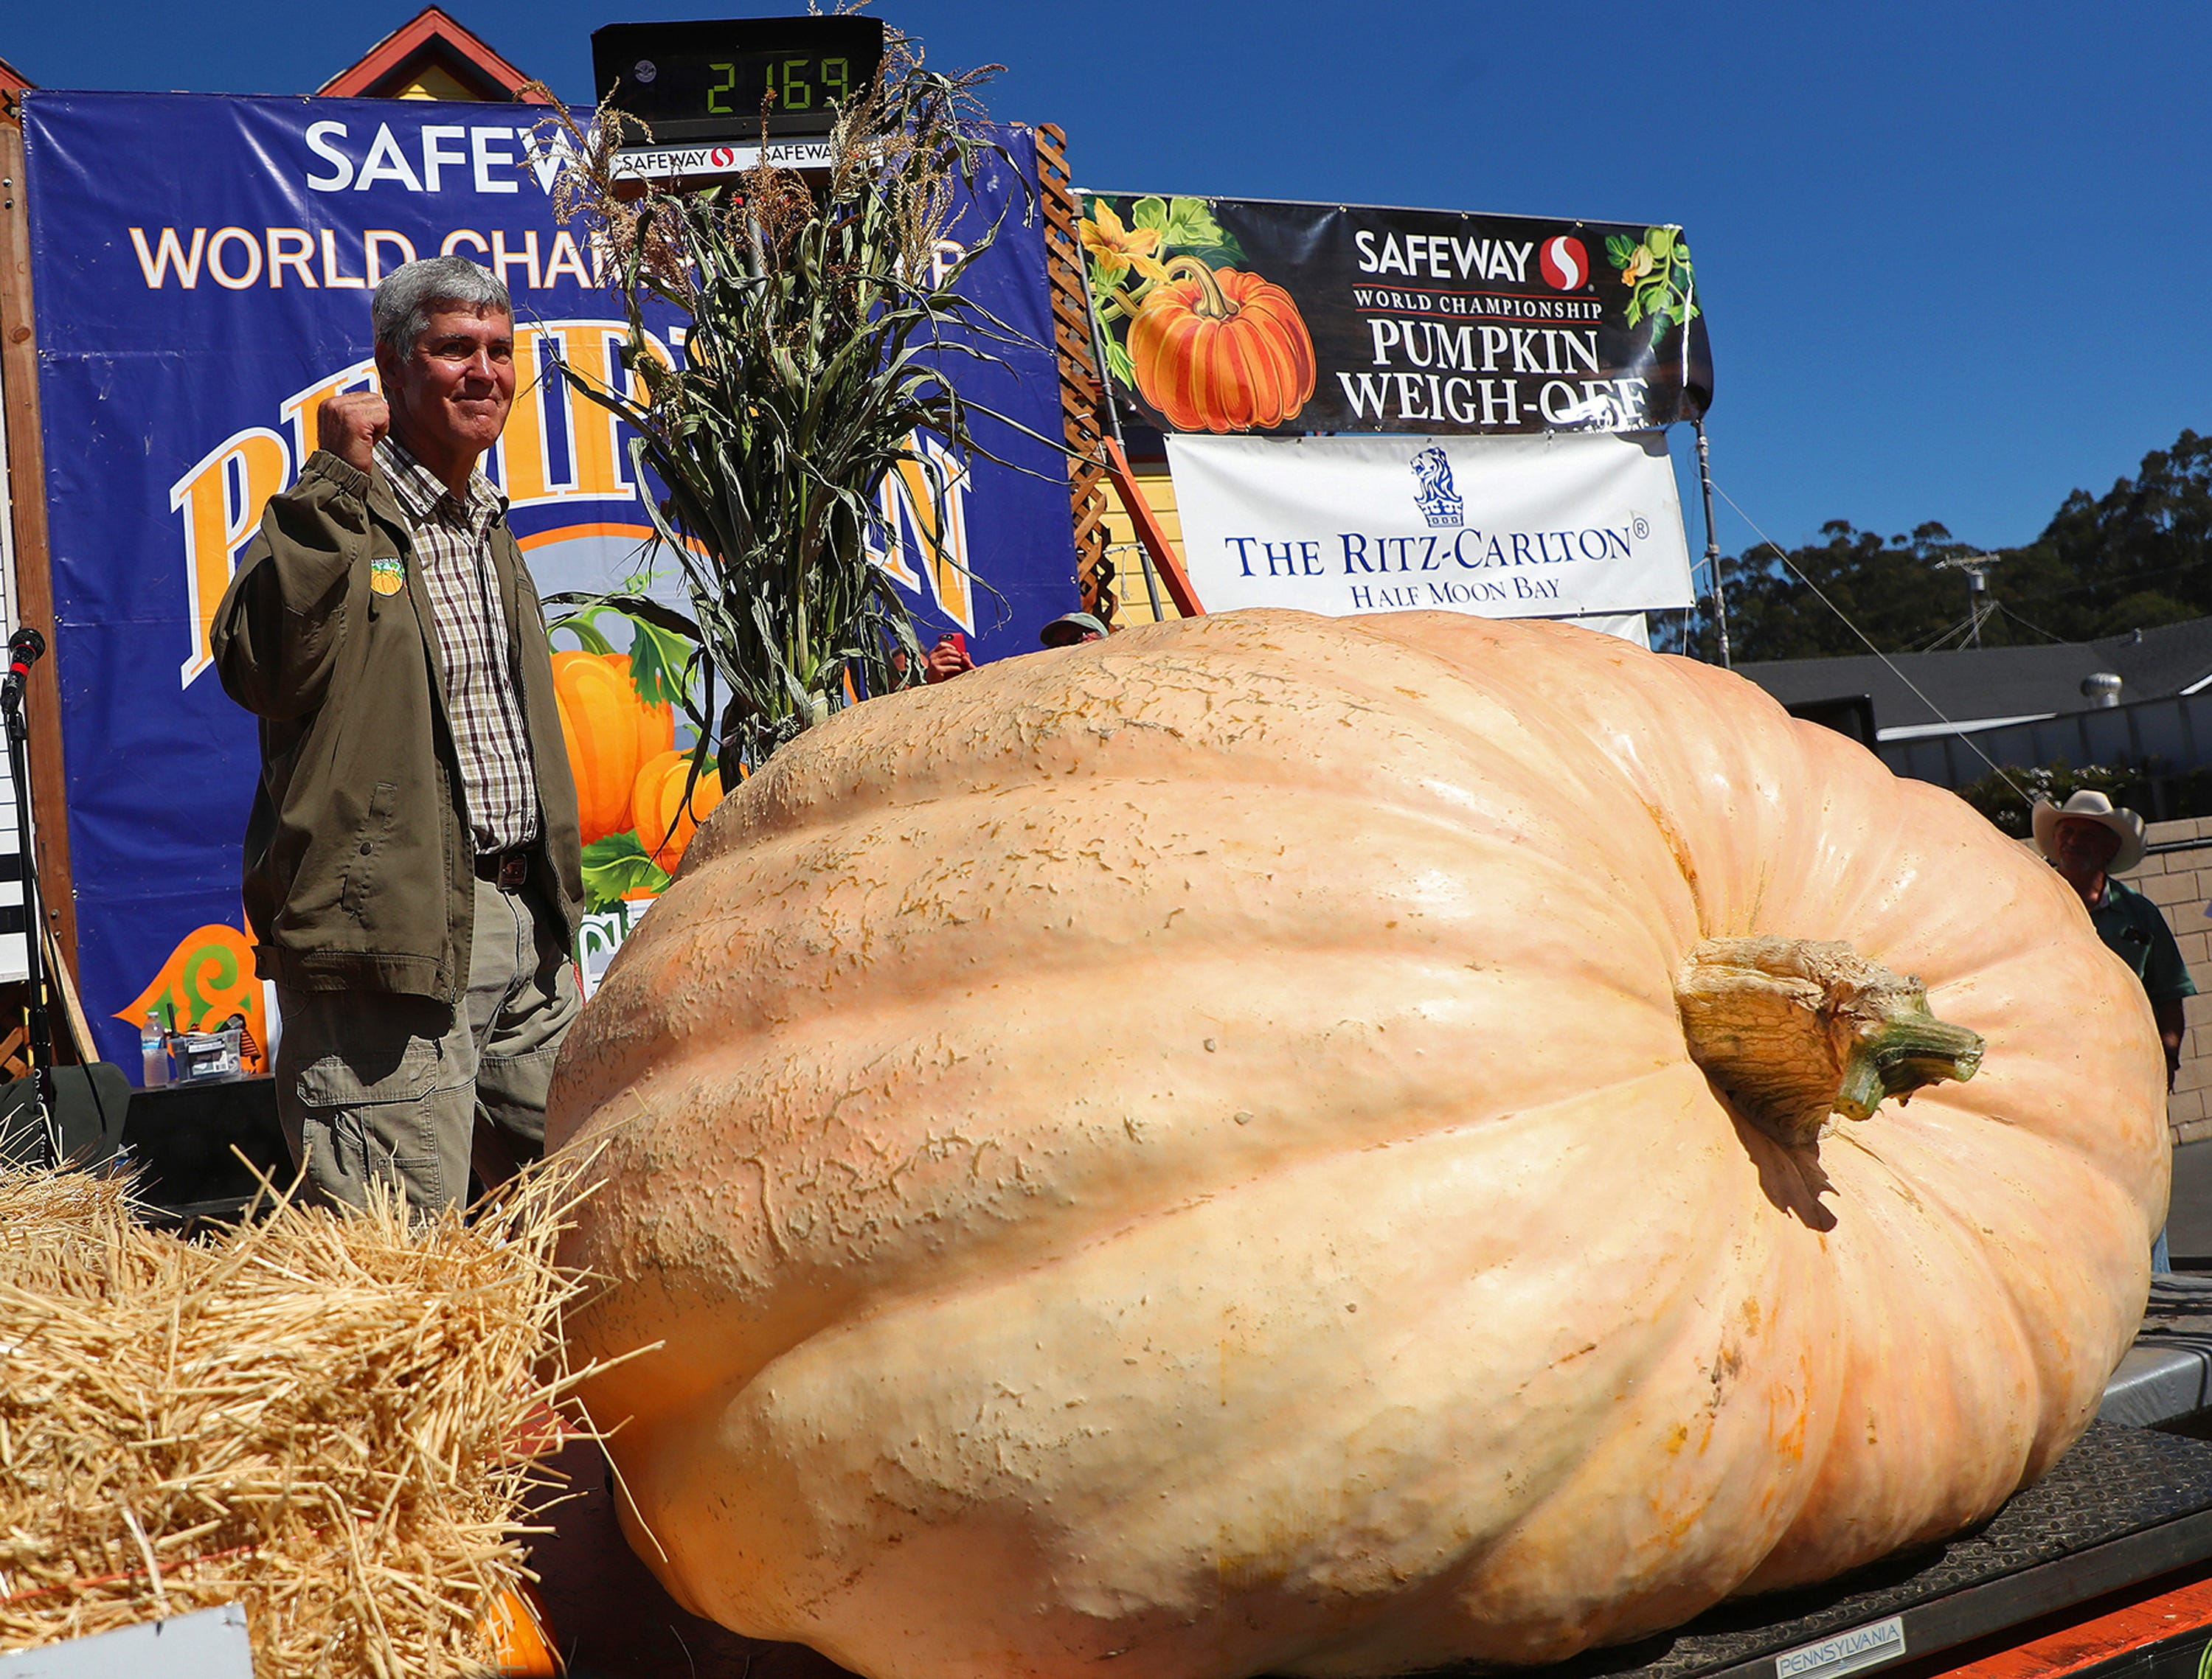 Steve Daletas of Pleasant Hill, Ore., celebrates his first place win in the 45th annual Safeway World Championship Pumpkin Weigh-Off on Monday, Oct. 8, 2018, in Half Moon Bay, Calif. A commercial pilot from Oregon raised a giant pumpkin weighing 2,170 pounds (984 kilograms) to win a pumpkin-weighing contest in Northern California. Daletas credited a good seed and lots of sunny days since he planted it April 15. It is the fourth time Daleta takes top honors at the annual pumpkin-weighing contest. (Aric Crabb/Bay Area News Group via AP) ORG XMIT: CAJOS501